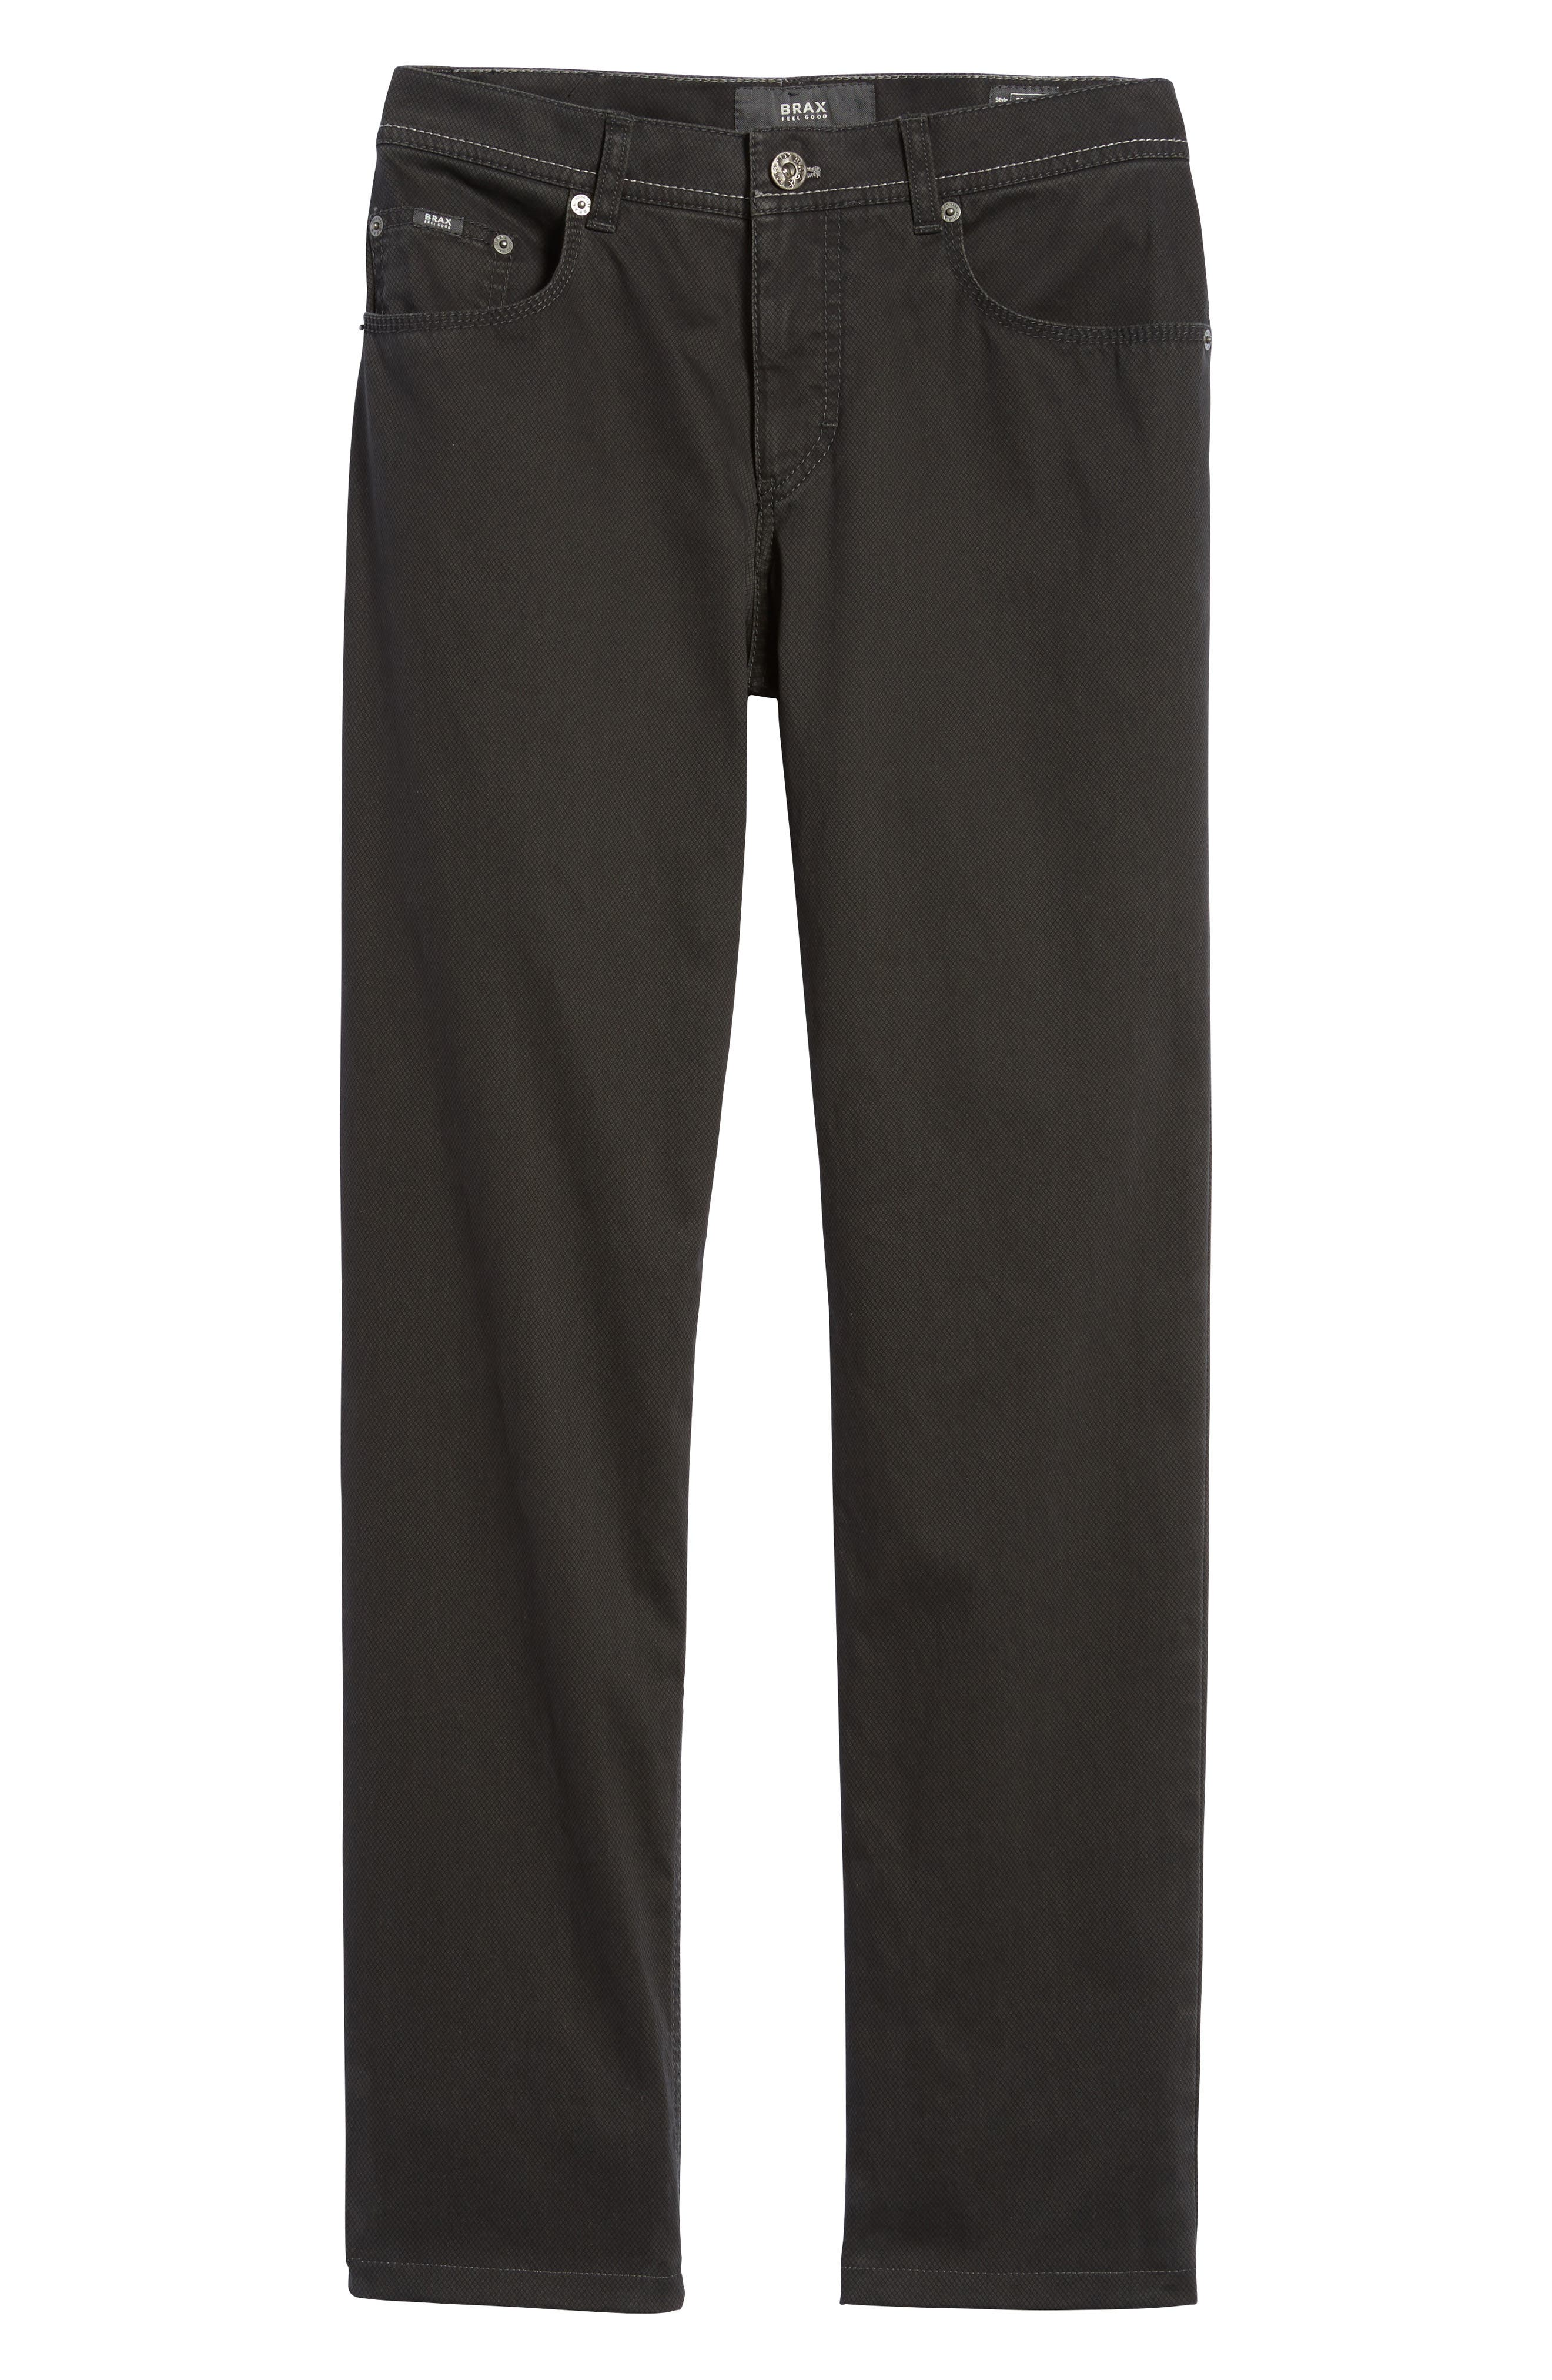 Luxury Stretch Modern Fit Trousers,                             Alternate thumbnail 6, color,                             Charcoal